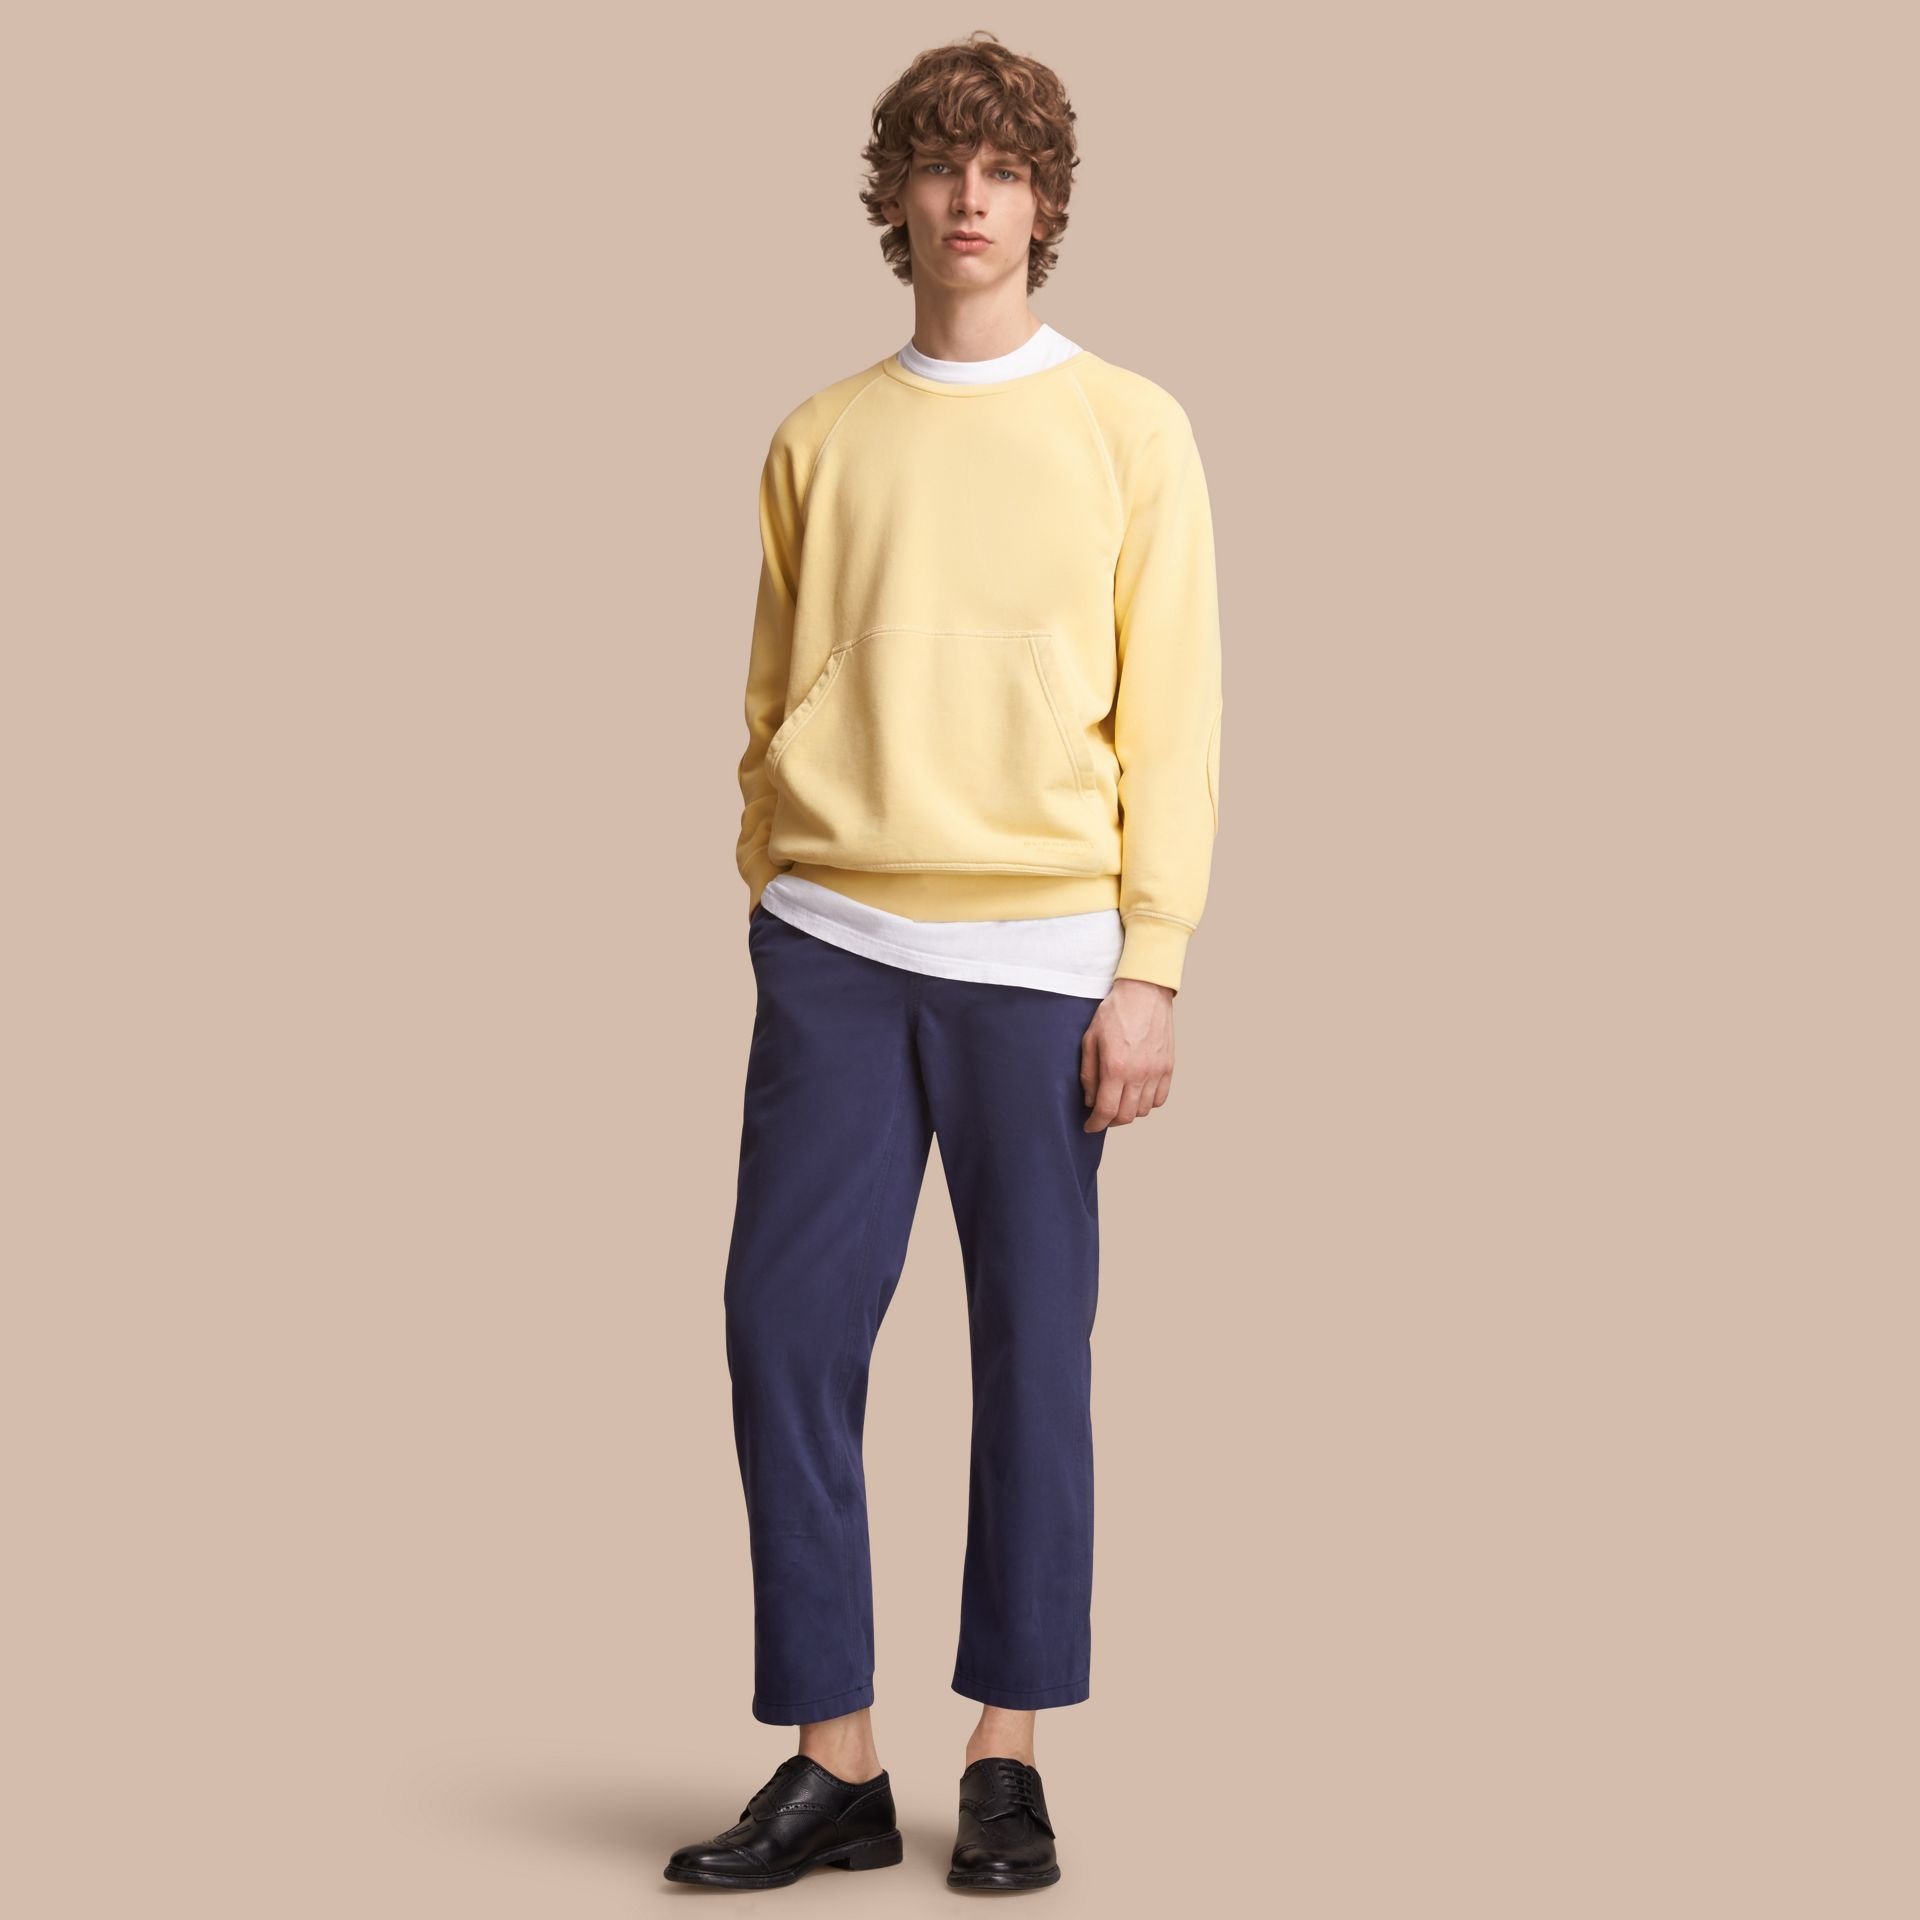 Unisex Pigment-dyed Cotton Oversize Sweatshirt in Pale Yellow - Men | Burberry - gallery image 0